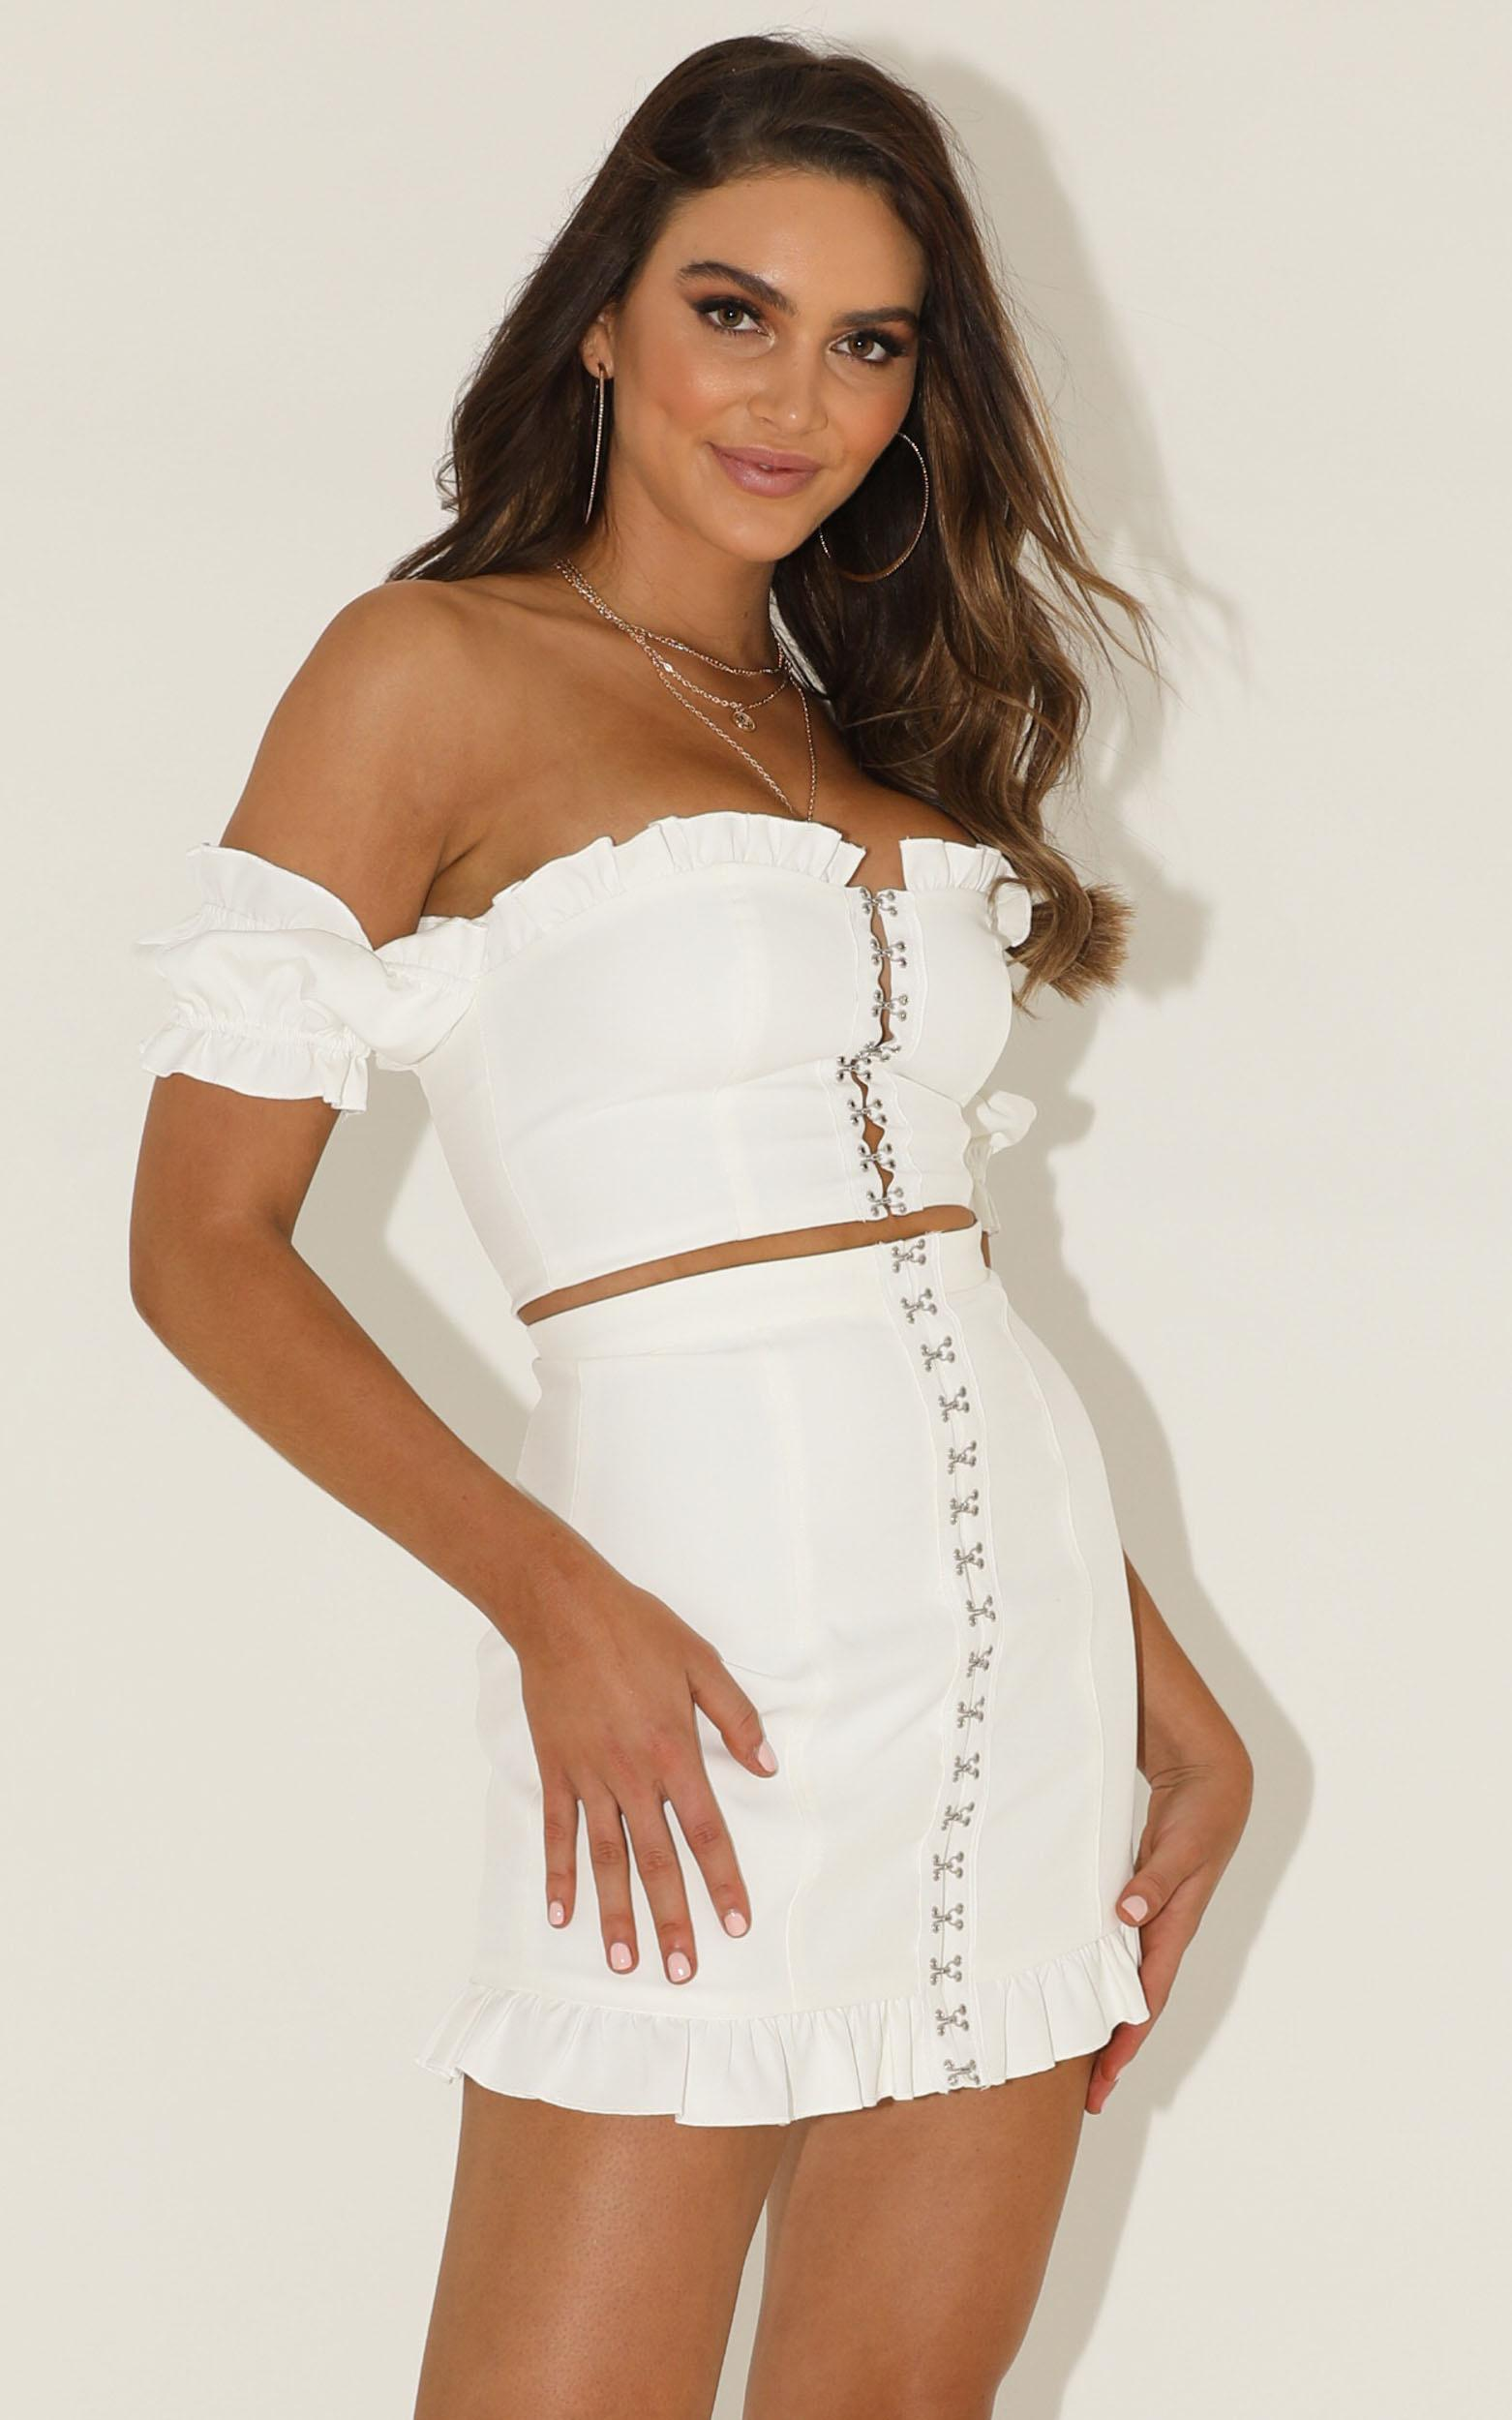 Carry All Your feelings Two Piece Set in  white - 16 (XXL), White, hi-res image number null